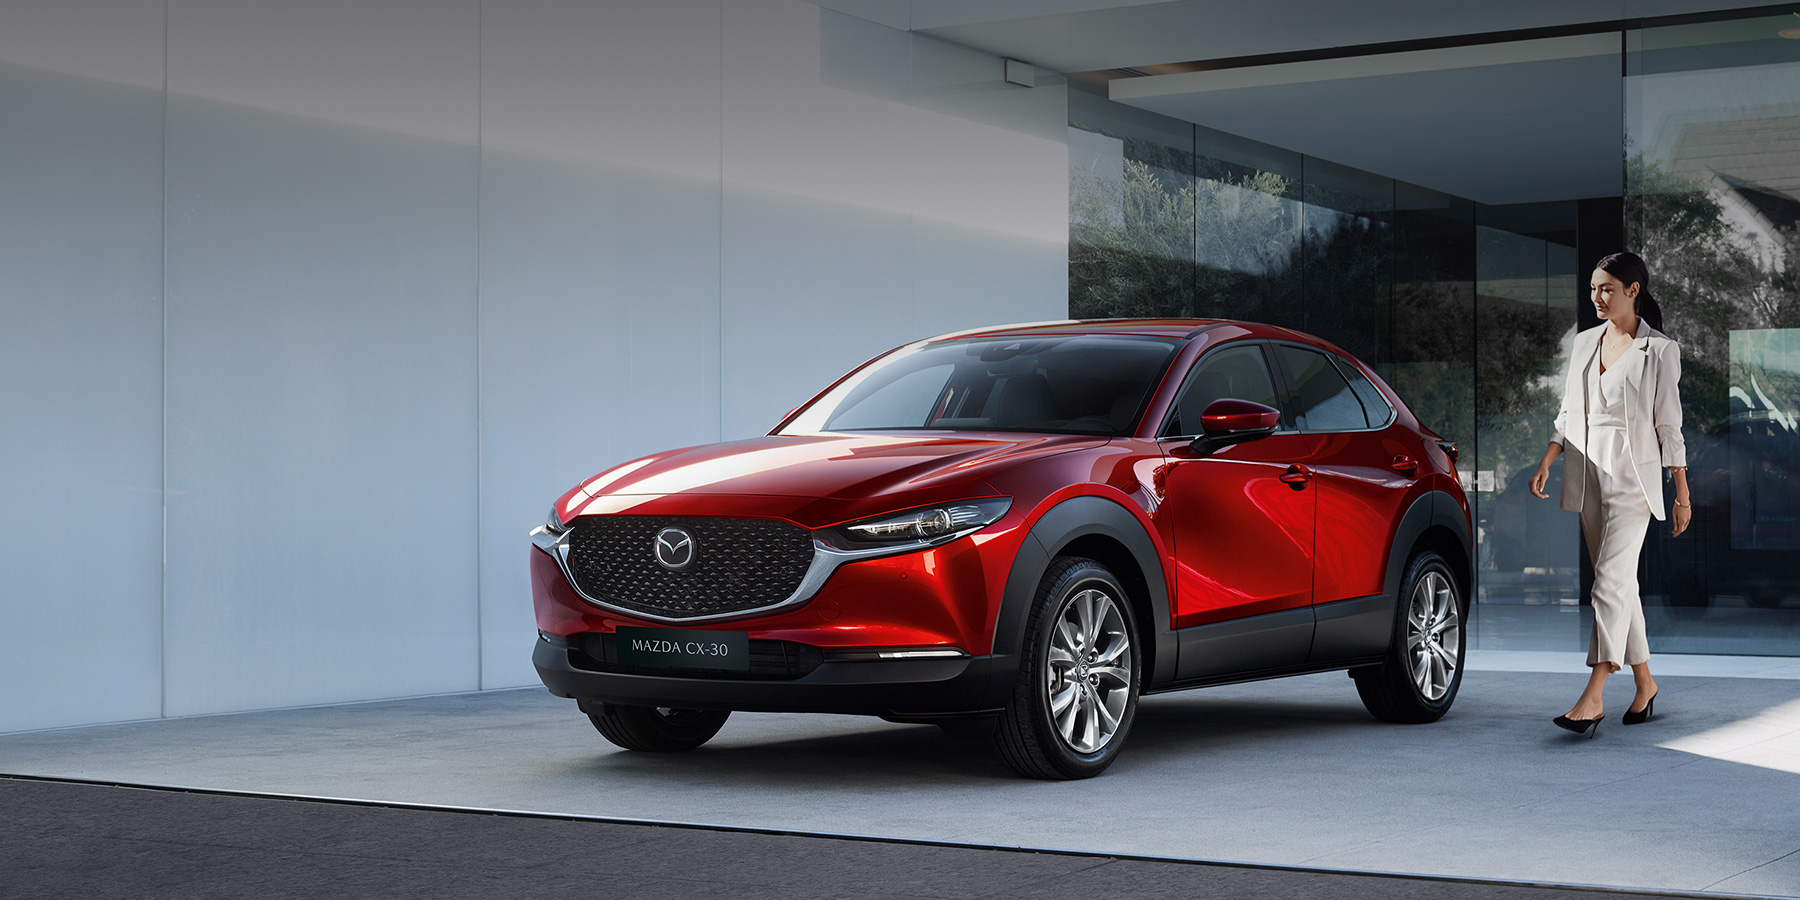 https://fellner.mazda.at/wp-content/uploads/sites/56/2019/09/CX-30-3.jpg